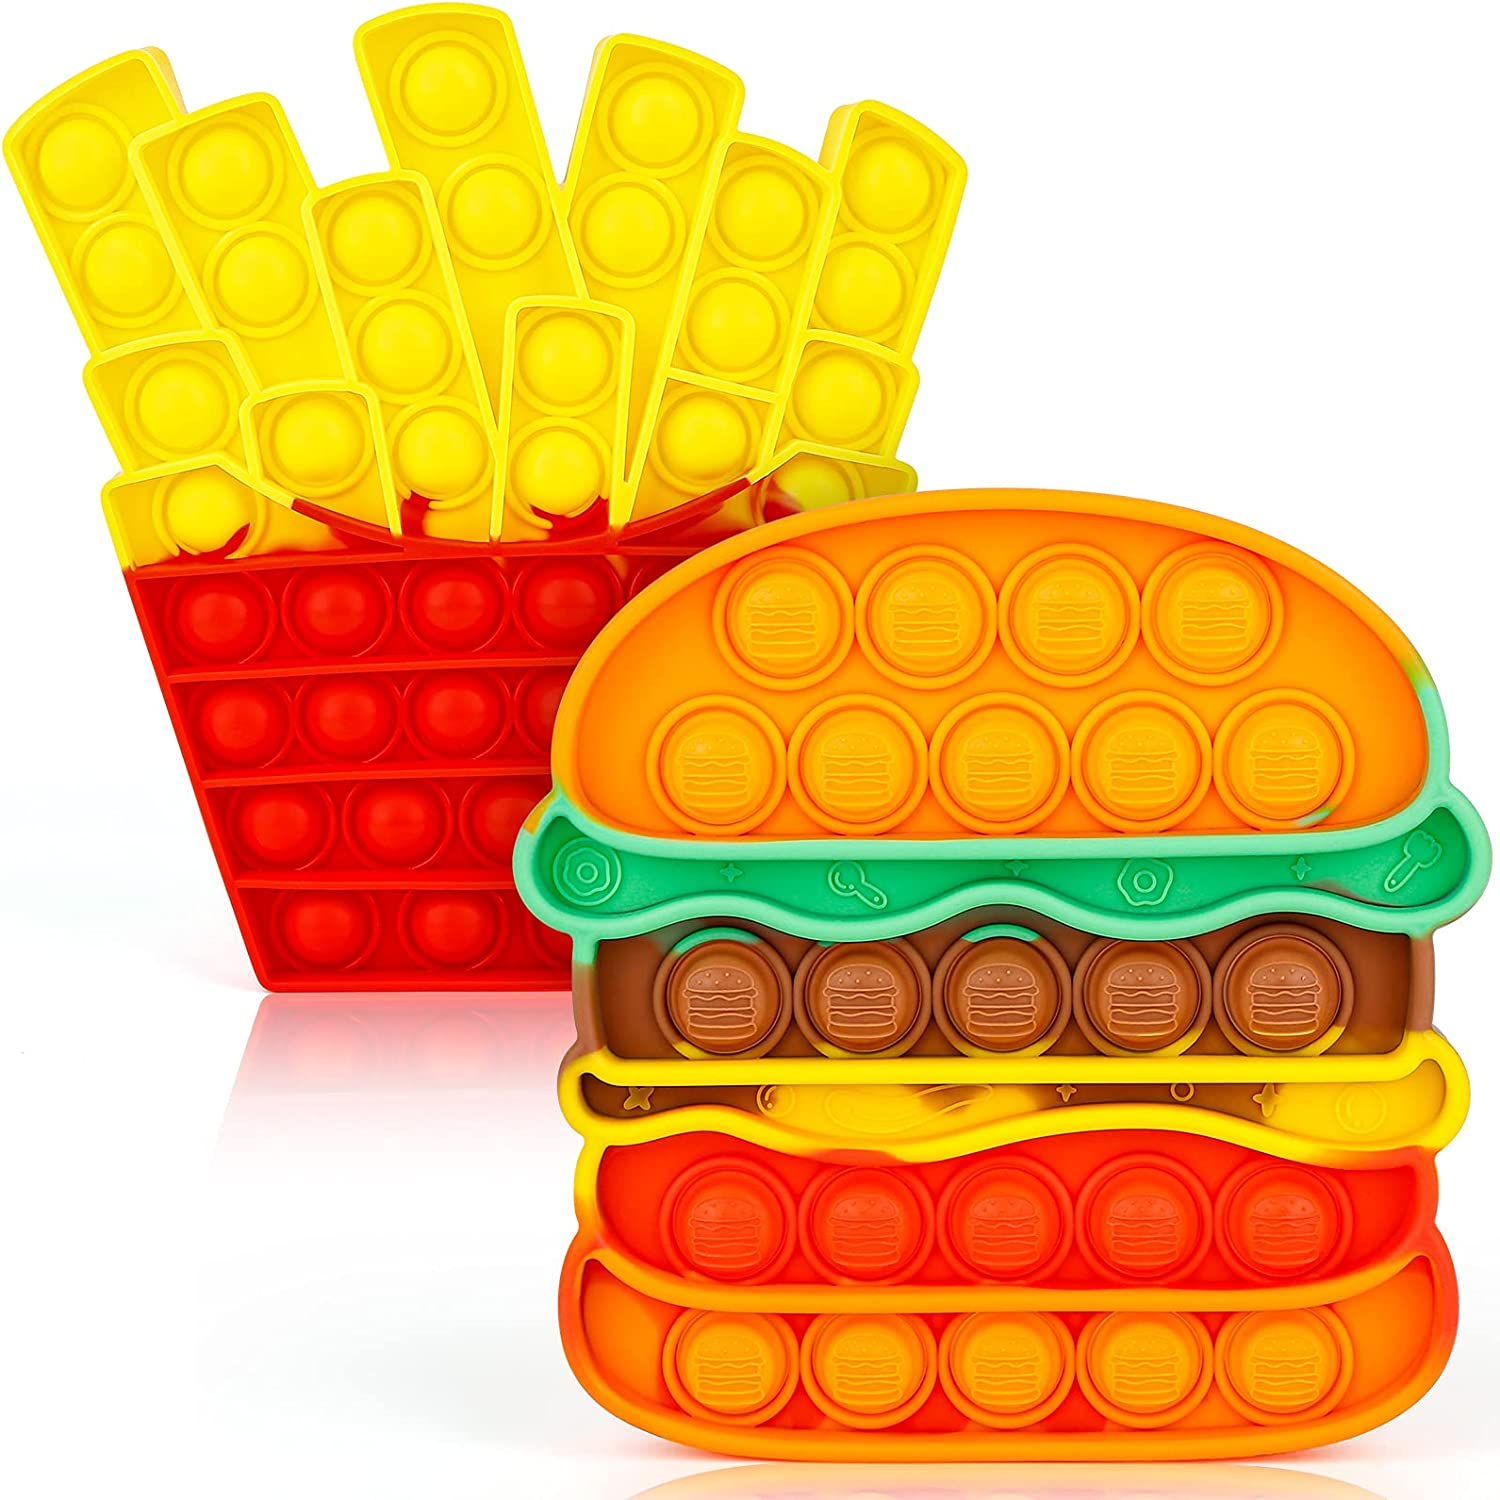 Amazon.com: iTechjoy Fidget Toys Push It, Bubble Pop Popping Sensory Fidget Toy For Adult And Children, Its Push bubble Stress Toy For Autism, Sensory Popper Game Toy For Kids Boys Girls, Hamburger